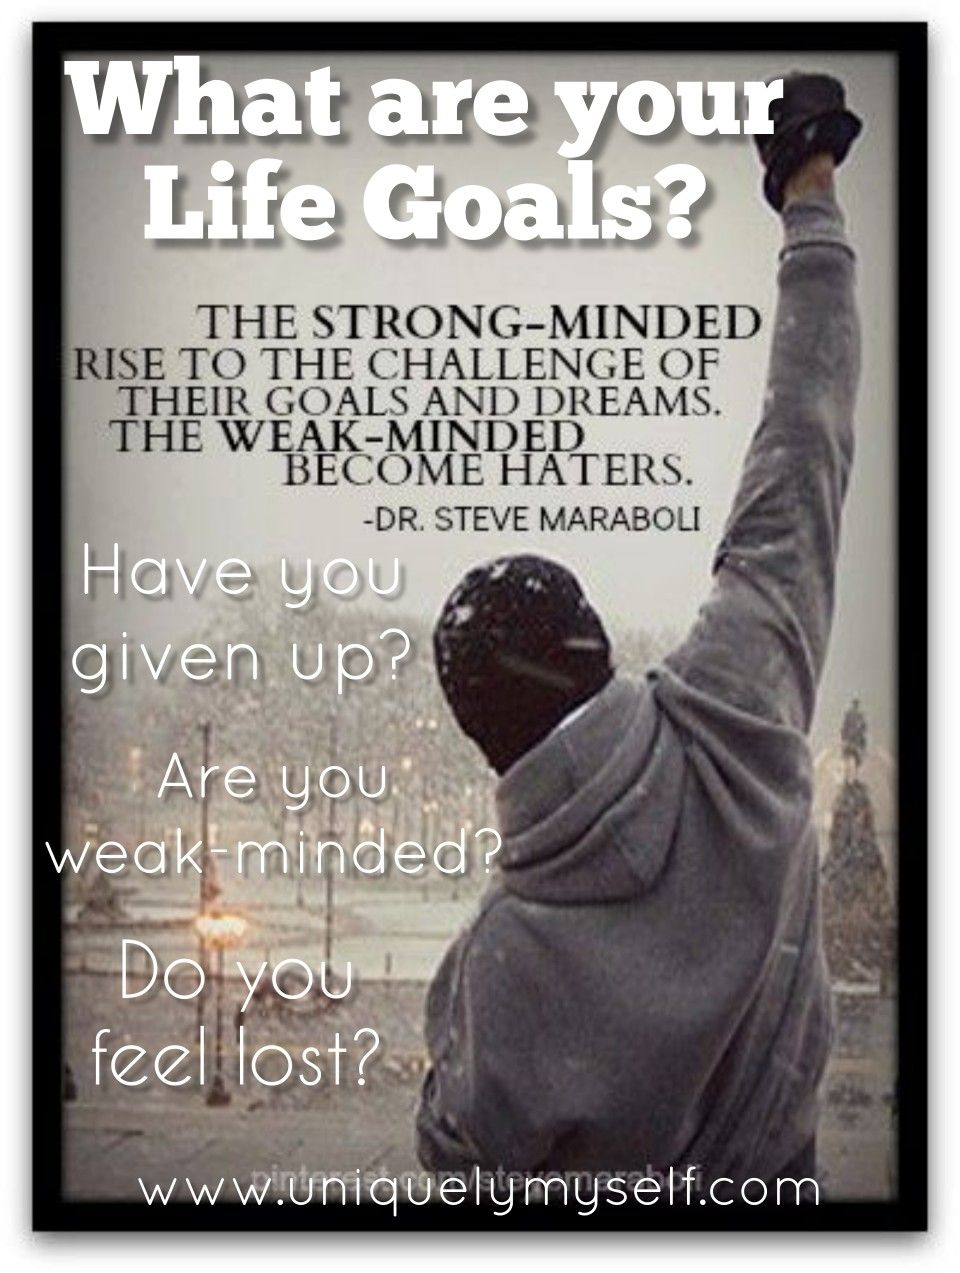 Are you strongminded? Have you given up on your goals? Do you need help with motivation? We can help you for free... Ask us today!  #askforhelp #dontquit #nevergiveup  #newlife